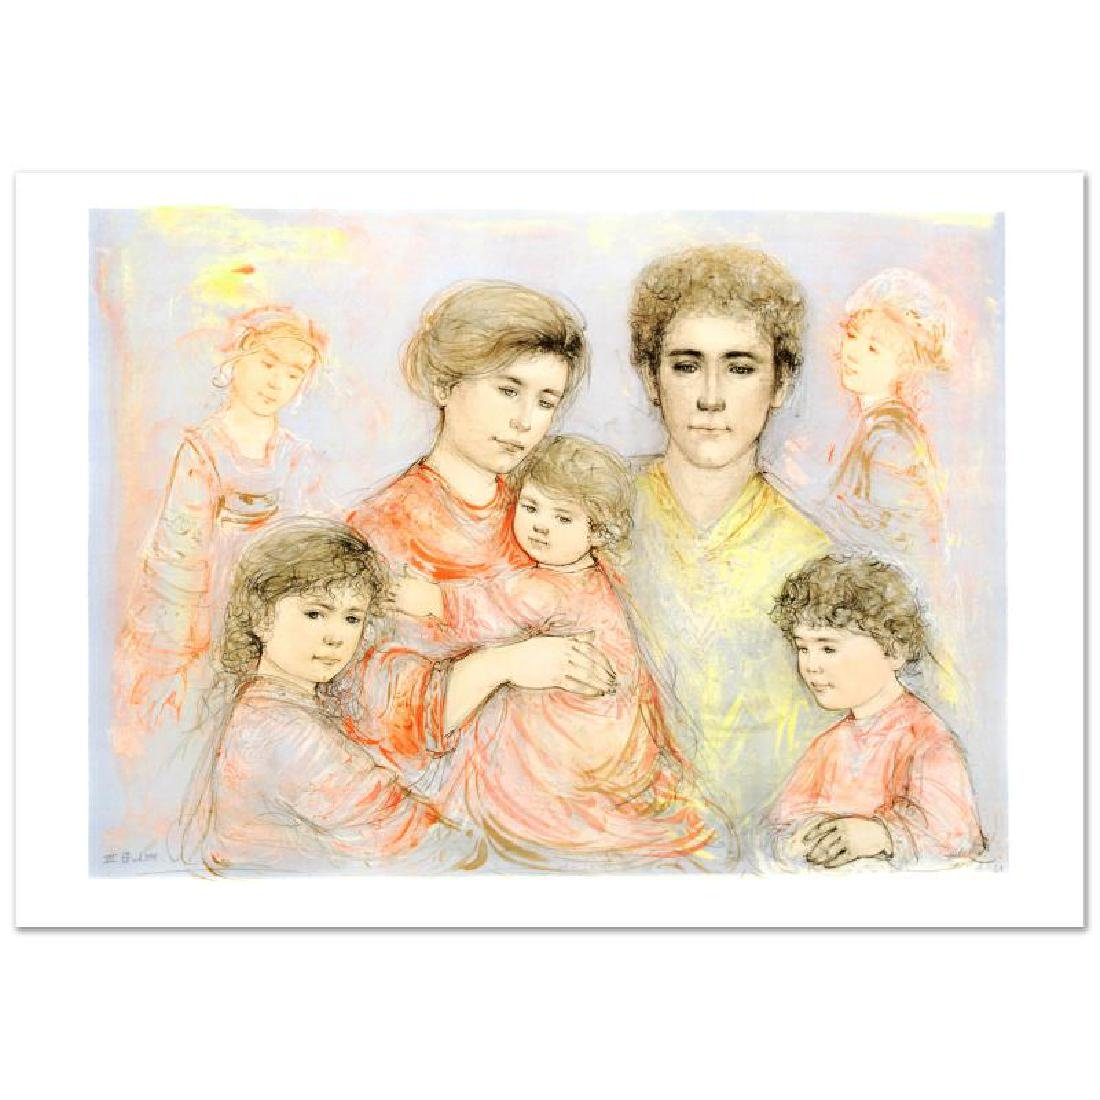 Michael's Family by Hibel (1917-2014)